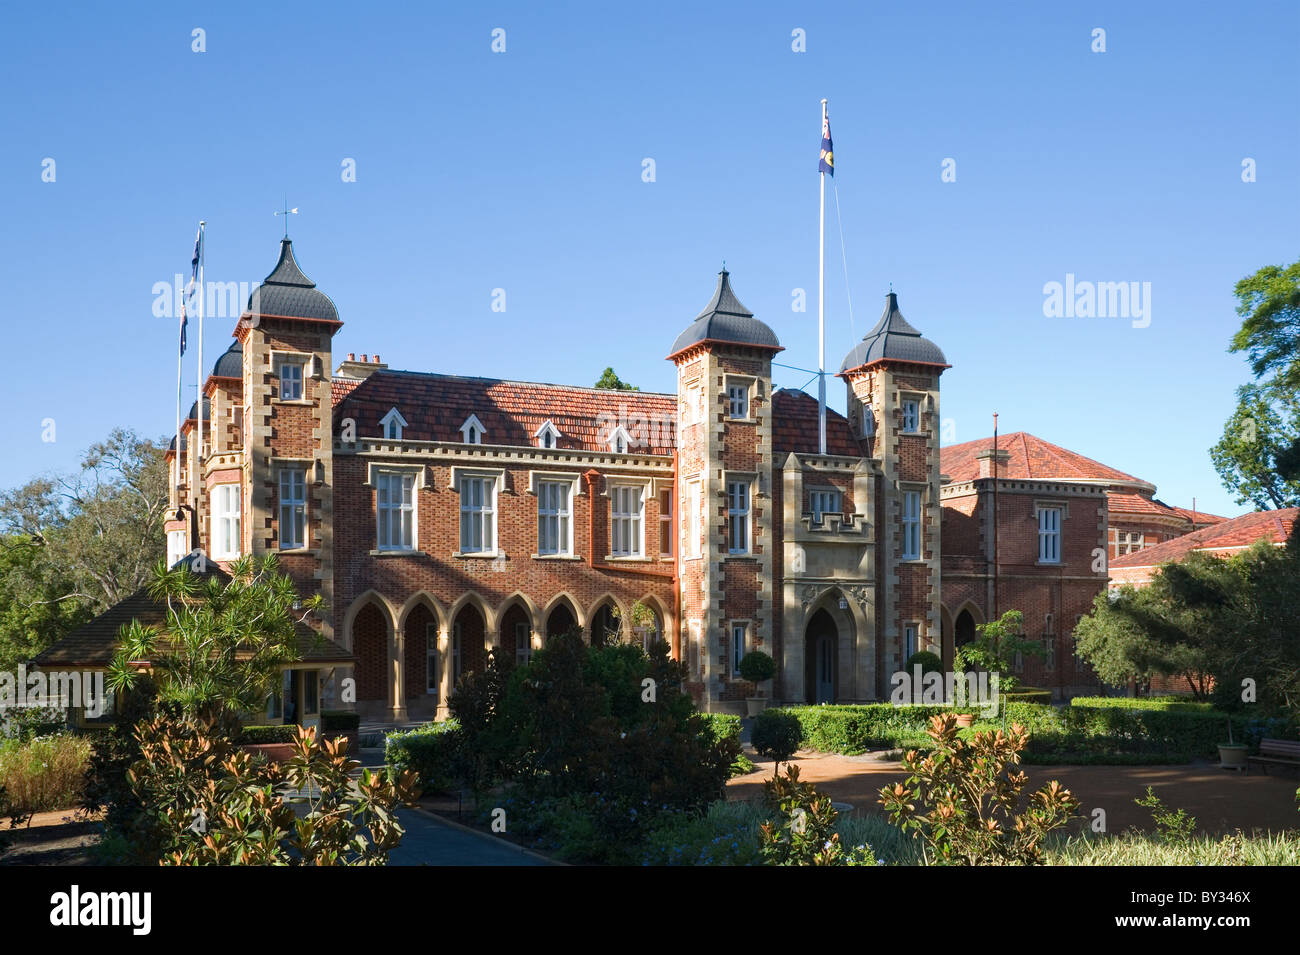 Government House, the official residence of the Governor (The Queen's representative) of Western Australia - Stock Image